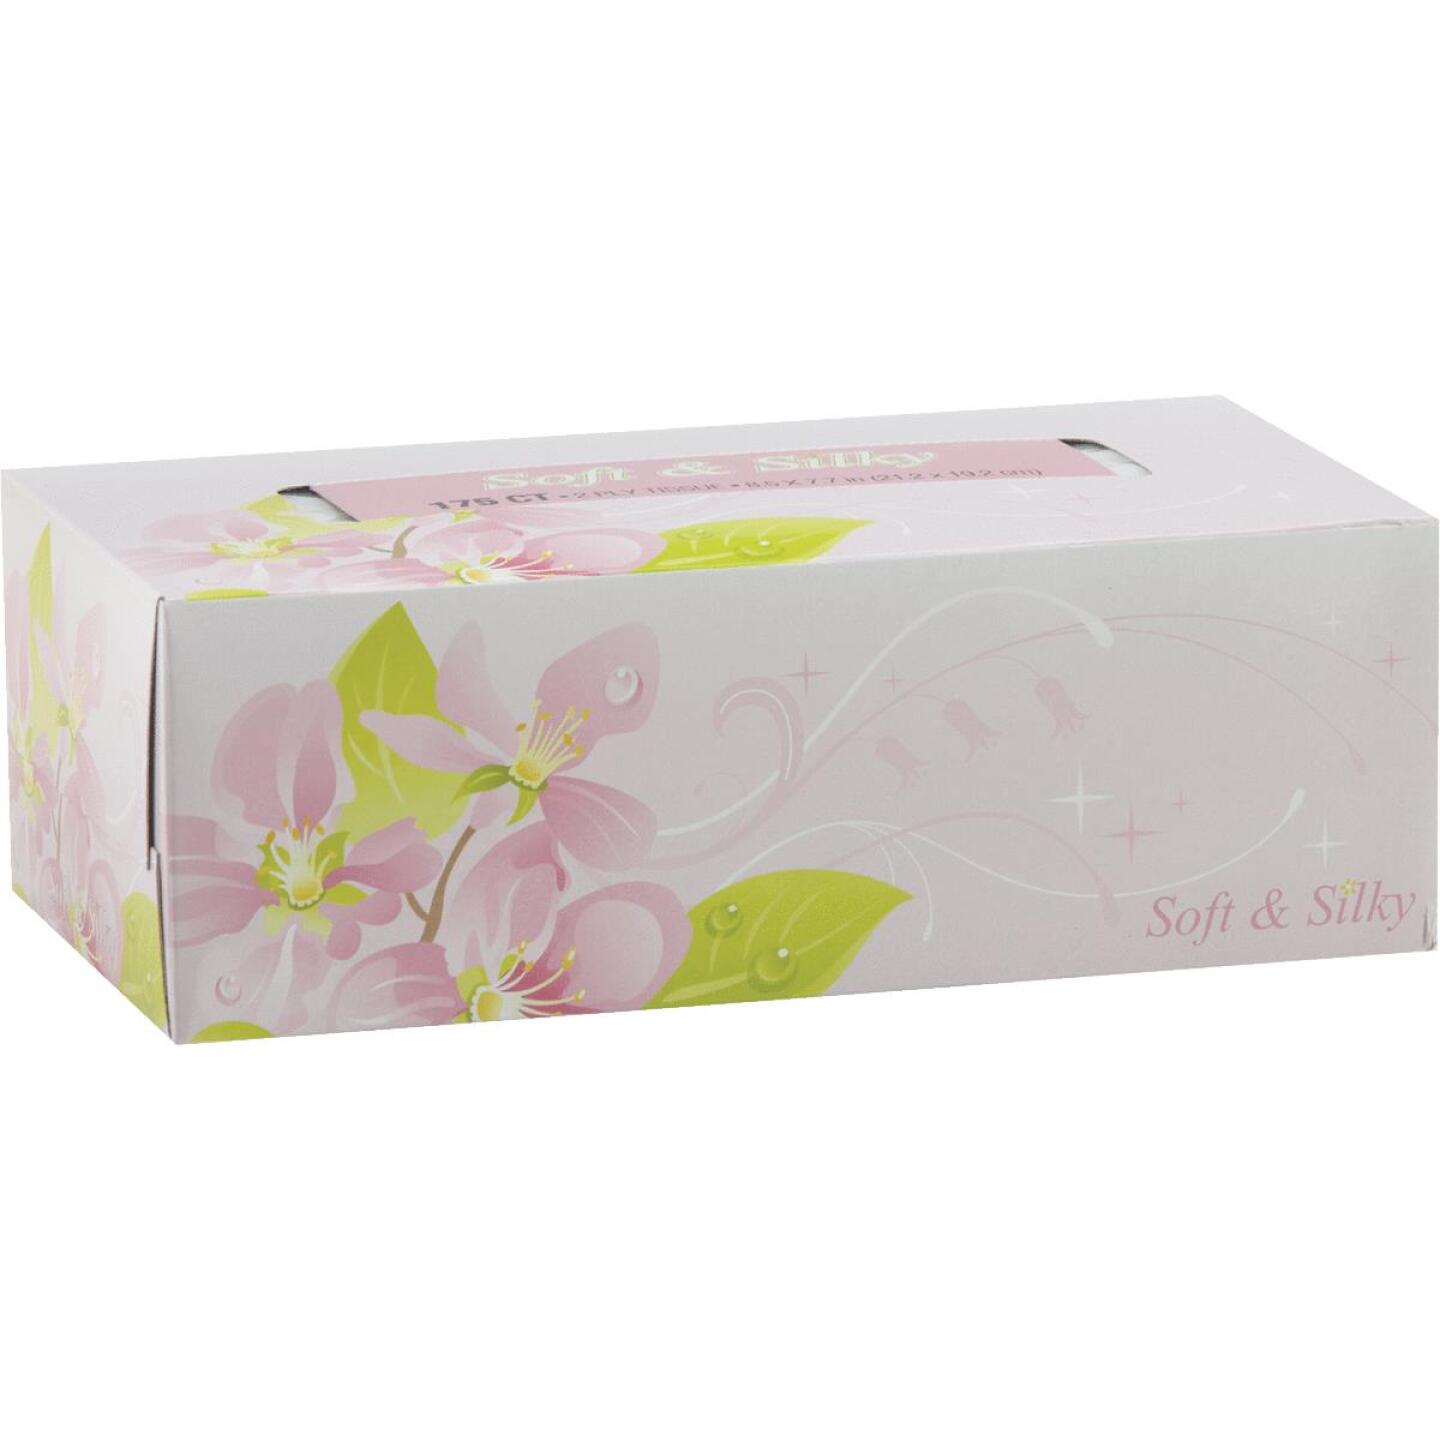 Soft & Silky 175 Count 2-Ply White Facial Tissue Image 1